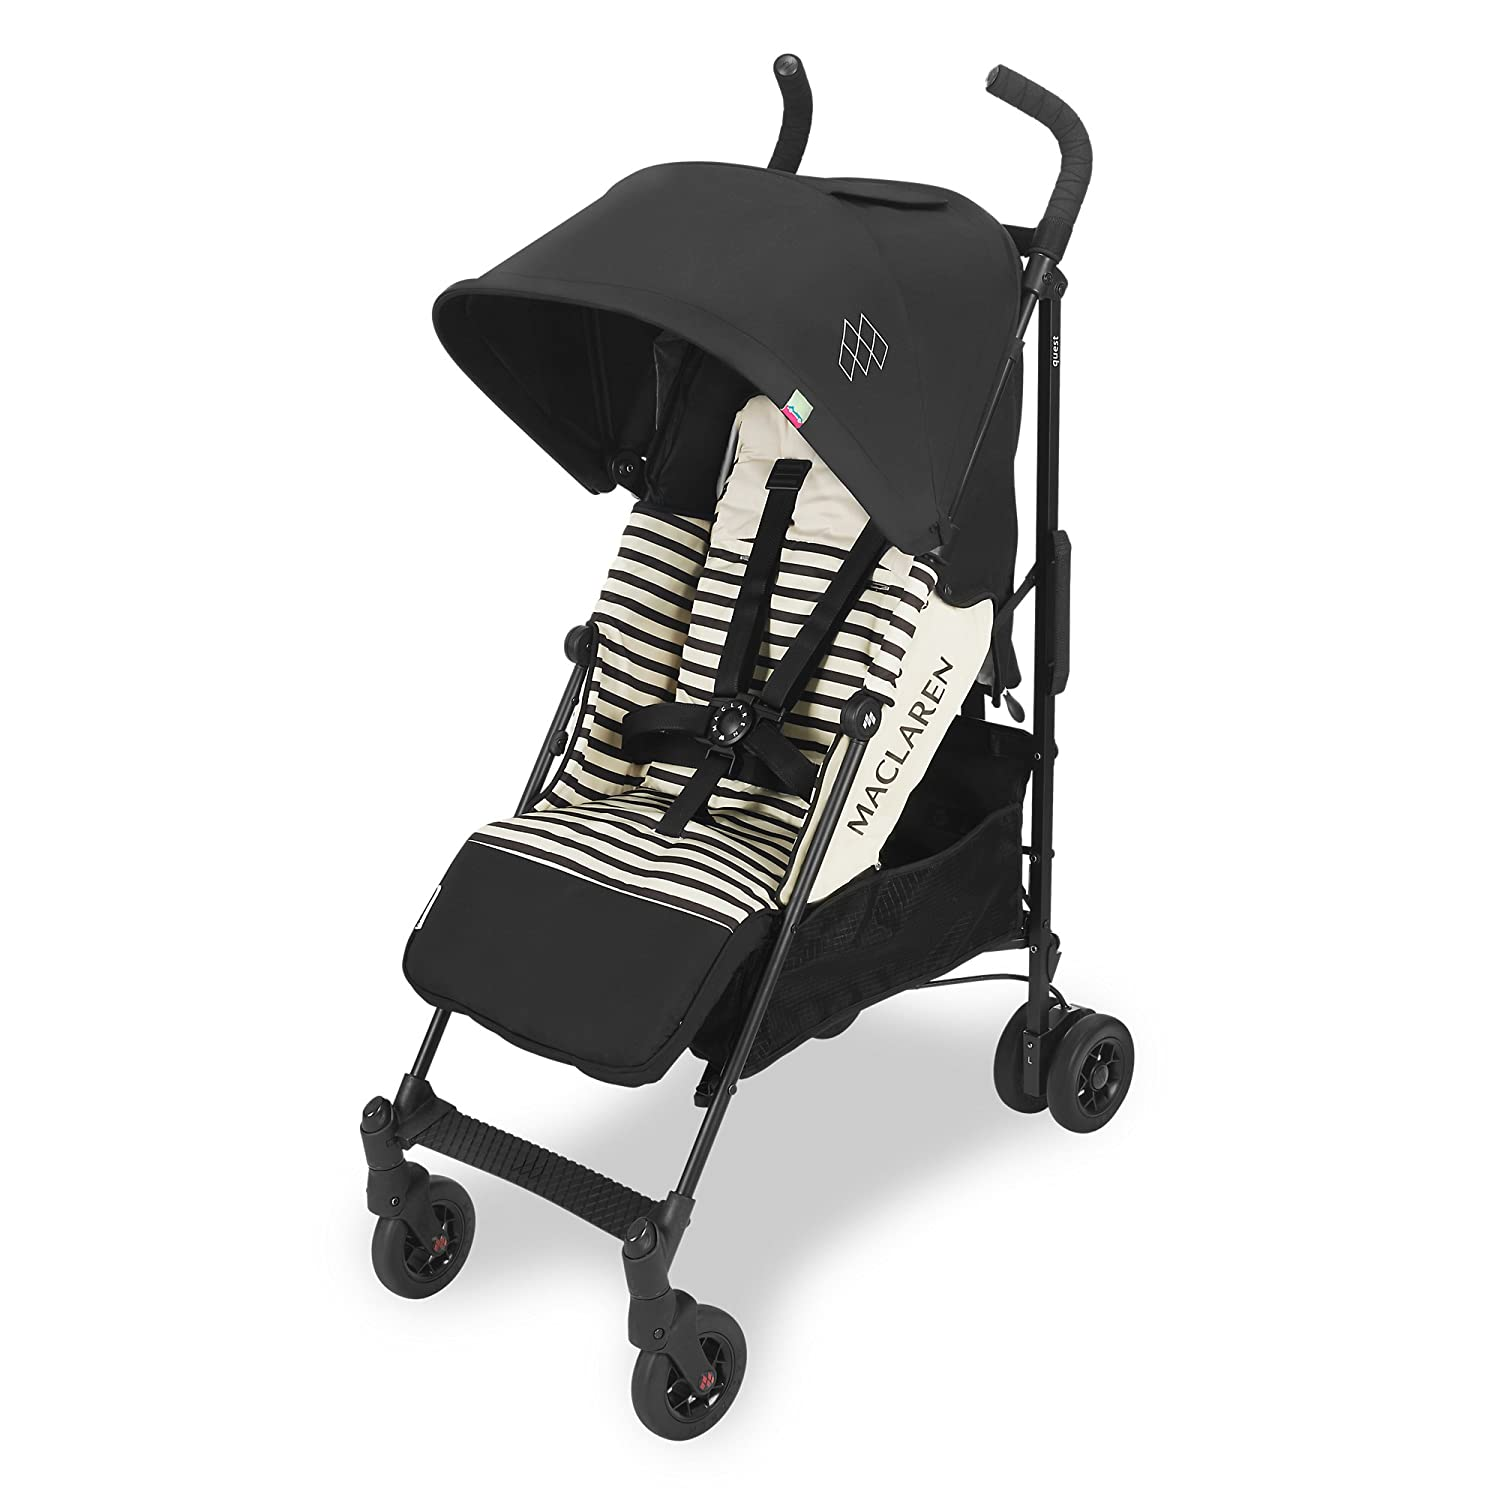 lightweight and compact extendable UPF50+//waterproof hood Newborn Safety System and compatible with Maclaren Carrycot accessories in the box Maclaren Quest Stroller- Full-featured